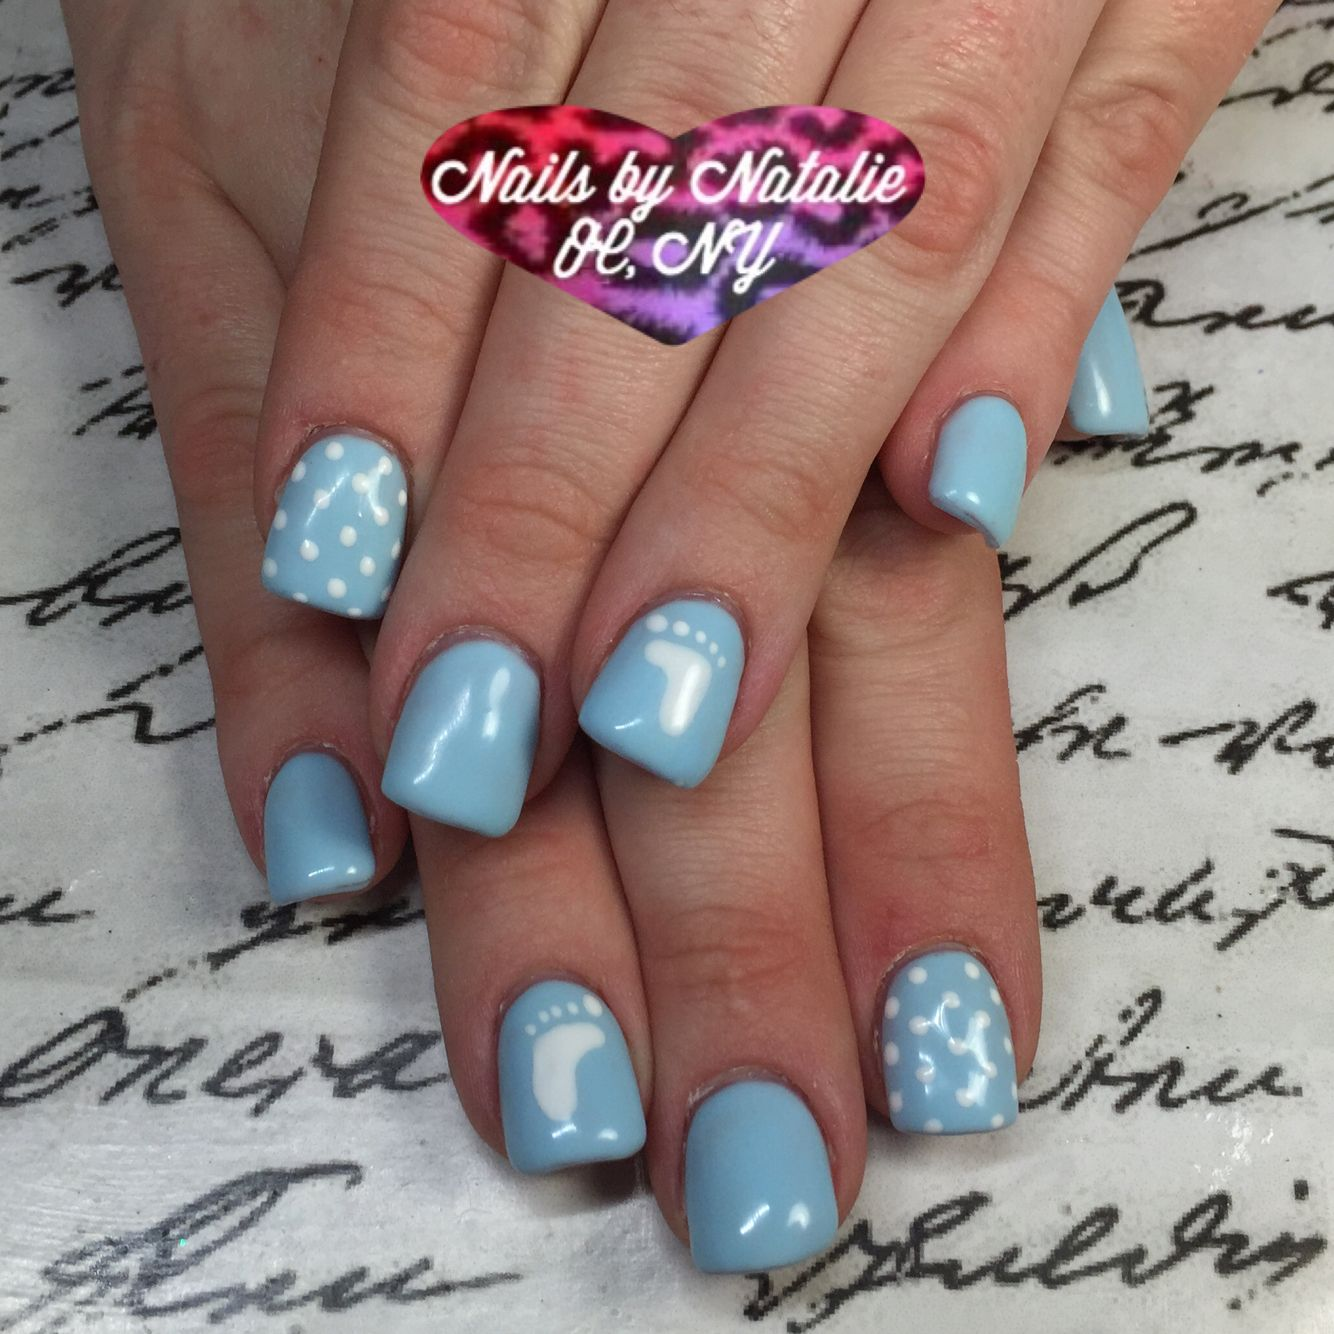 Gel nail designs: baby shower themed using Gelish, CND Brisa overlay and  hand painted - Gel Nail Designs: Baby Shower Themed Using Gelish, CND Brisa